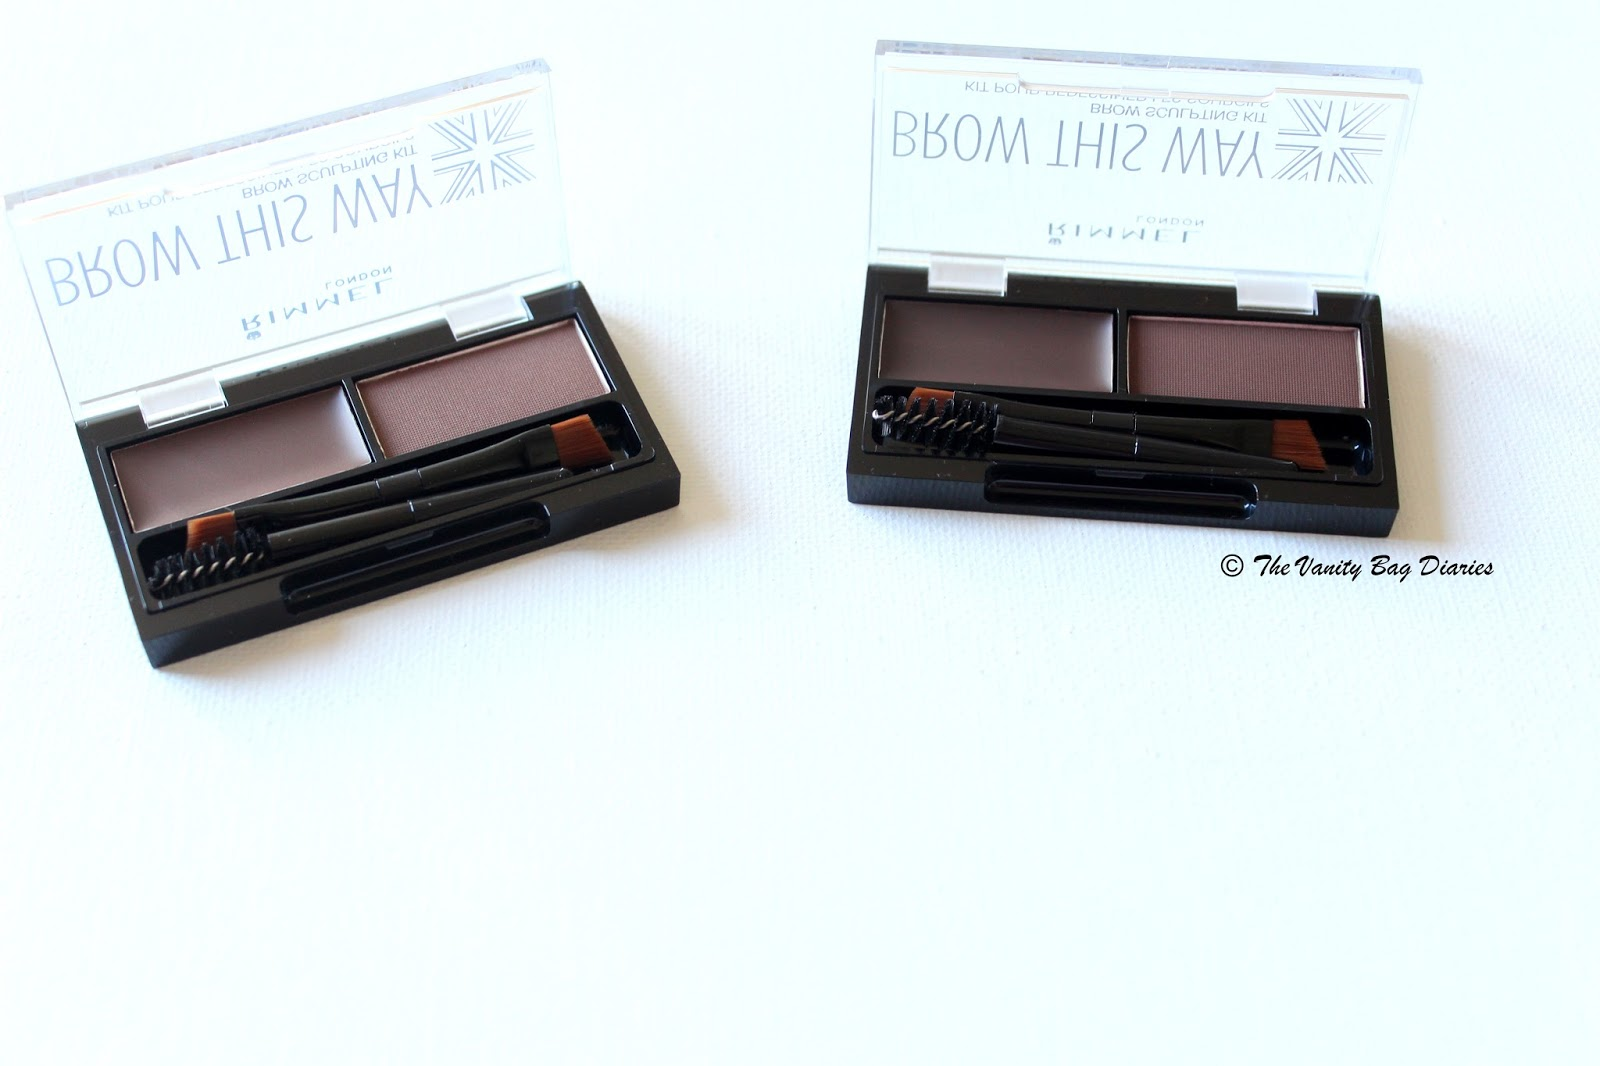 The Vanity Bag Diaries Review Swatches Rimmel Brow This Way